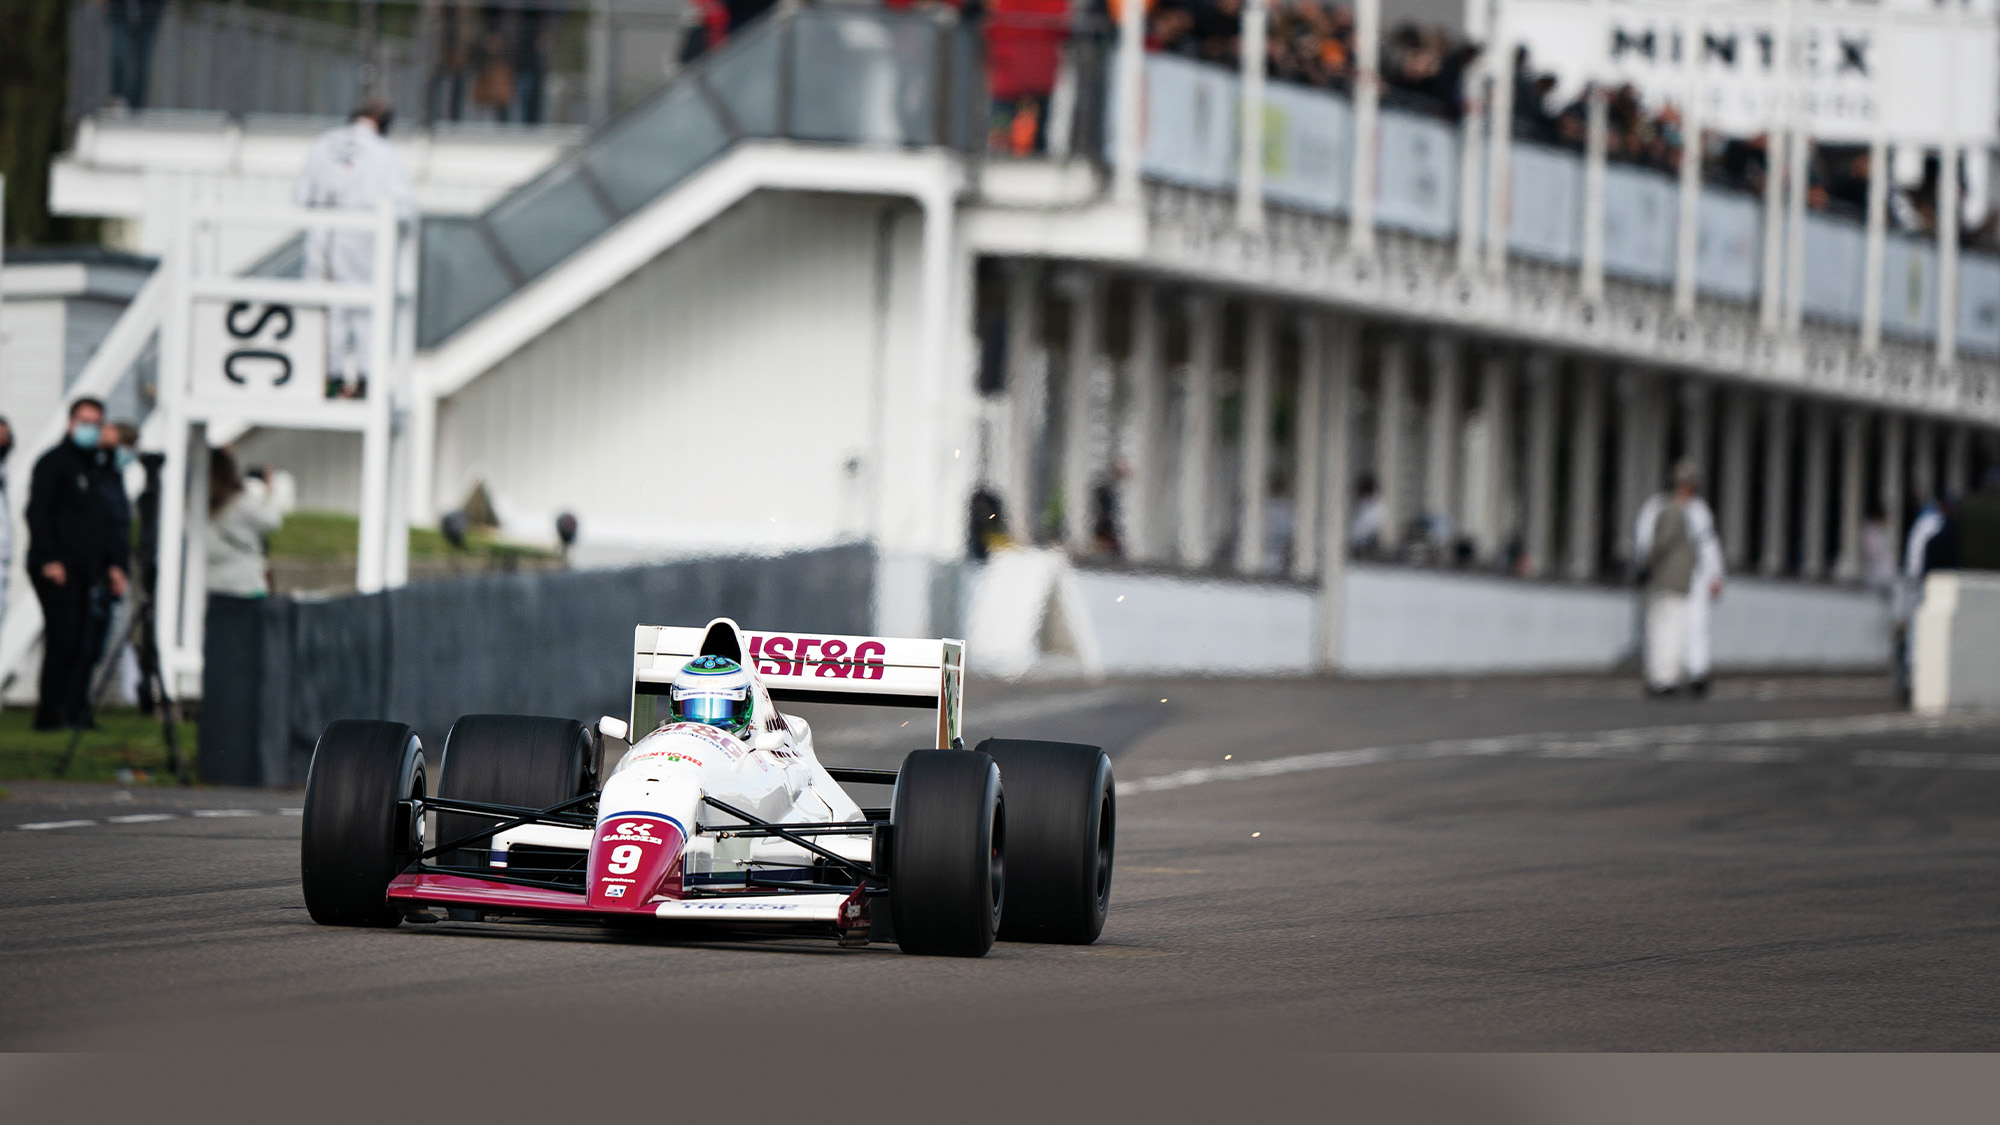 Nick Padmore at the 2020 Goodwood SpeedWeek in the Arrows F1 car he used to set the circuit lap record